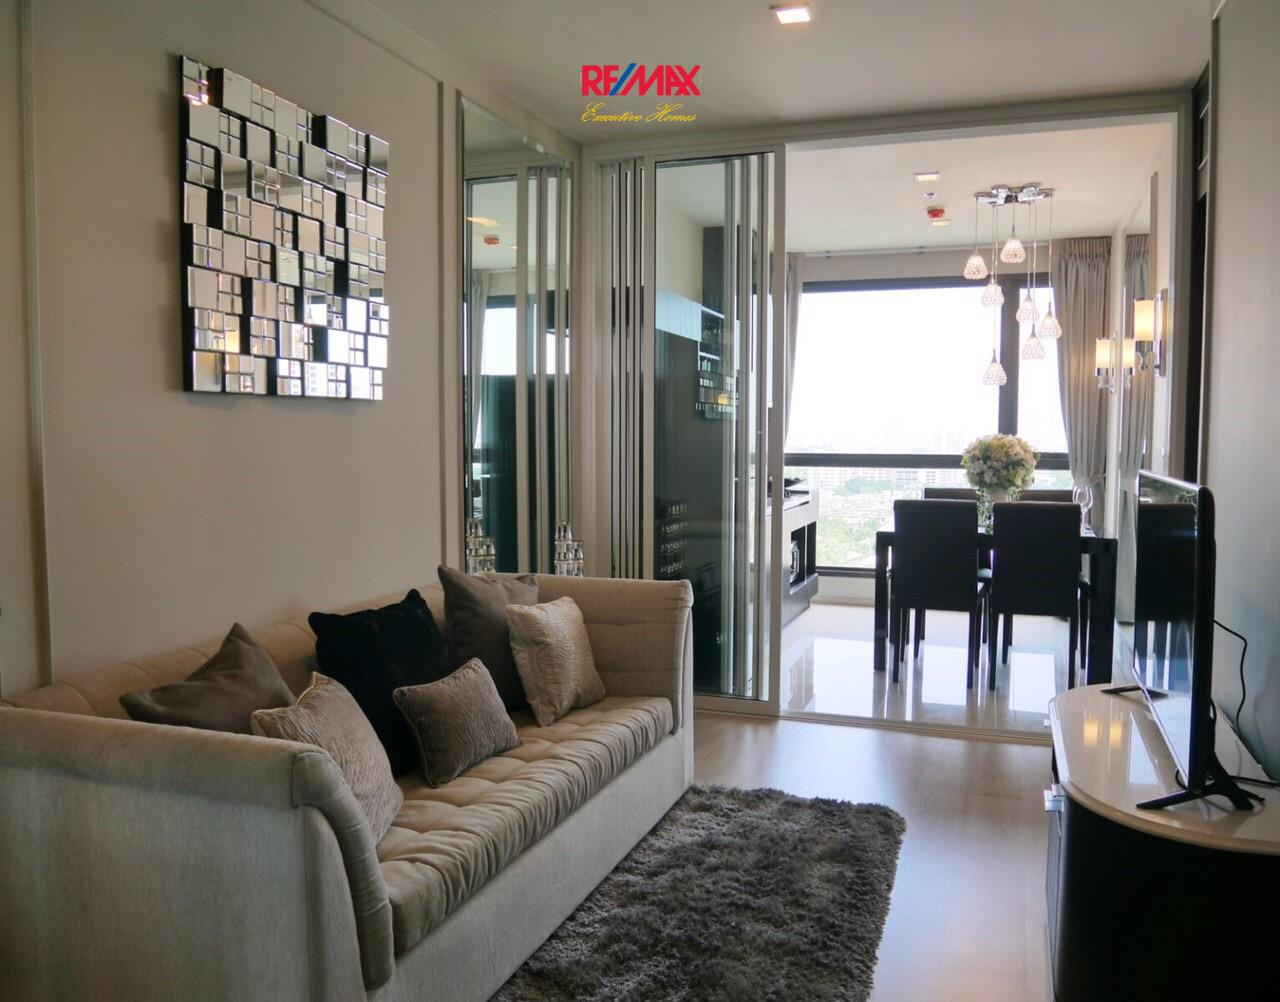 RE/MAX Executive Homes Agency's Lovely 1 Bedroom for Rent Rhythm 44/1 3